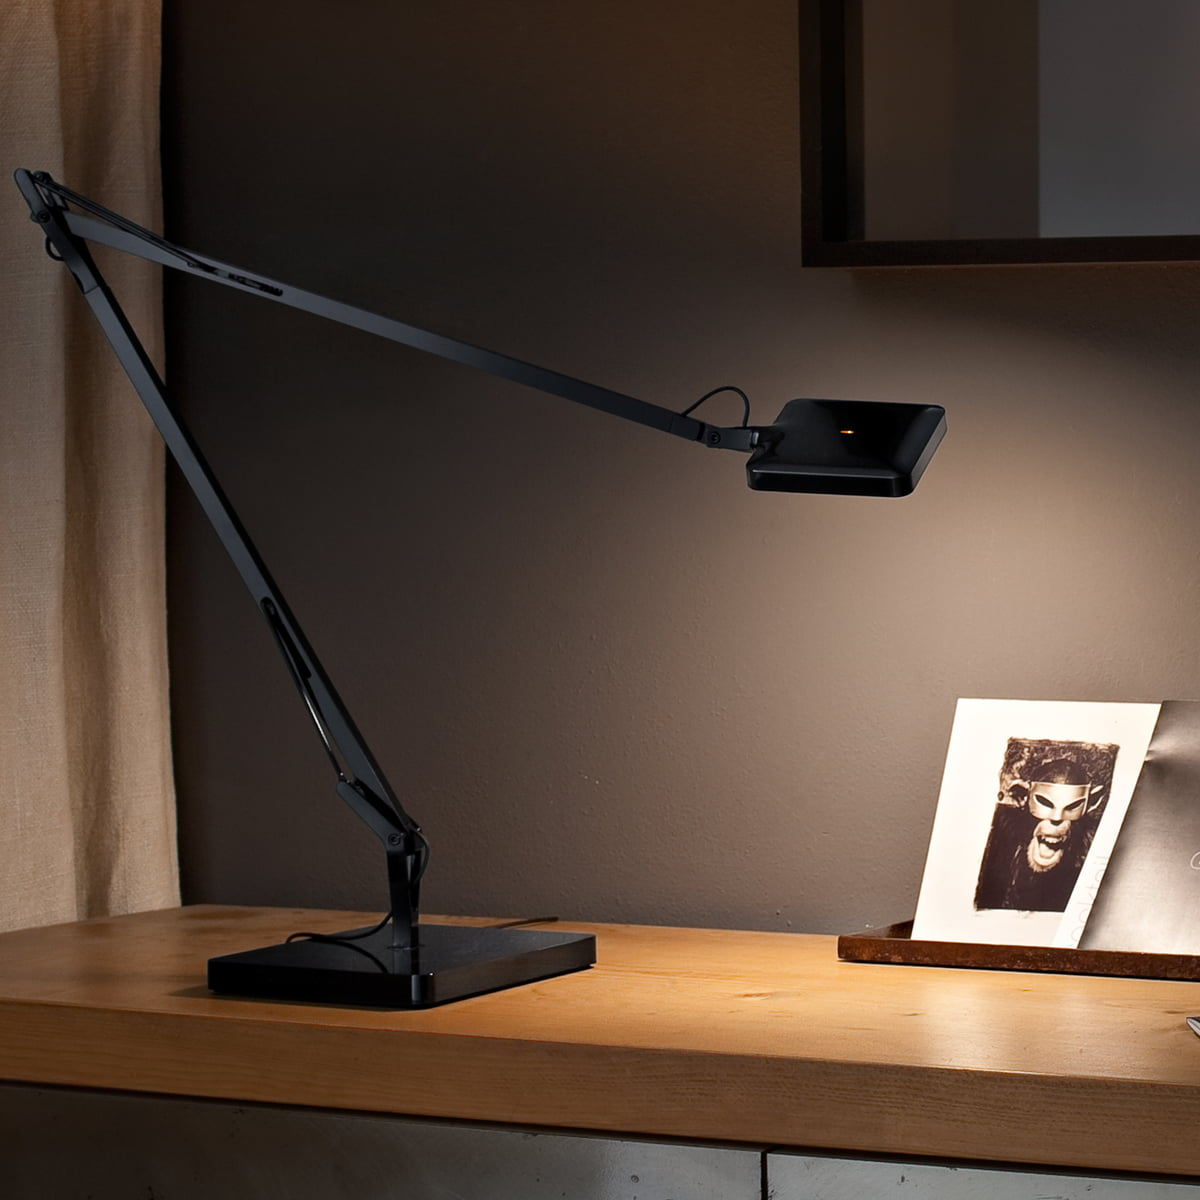 Best Color Temp For Shop Lights: Kelvin LED Table Lamp By Flos In The Shop